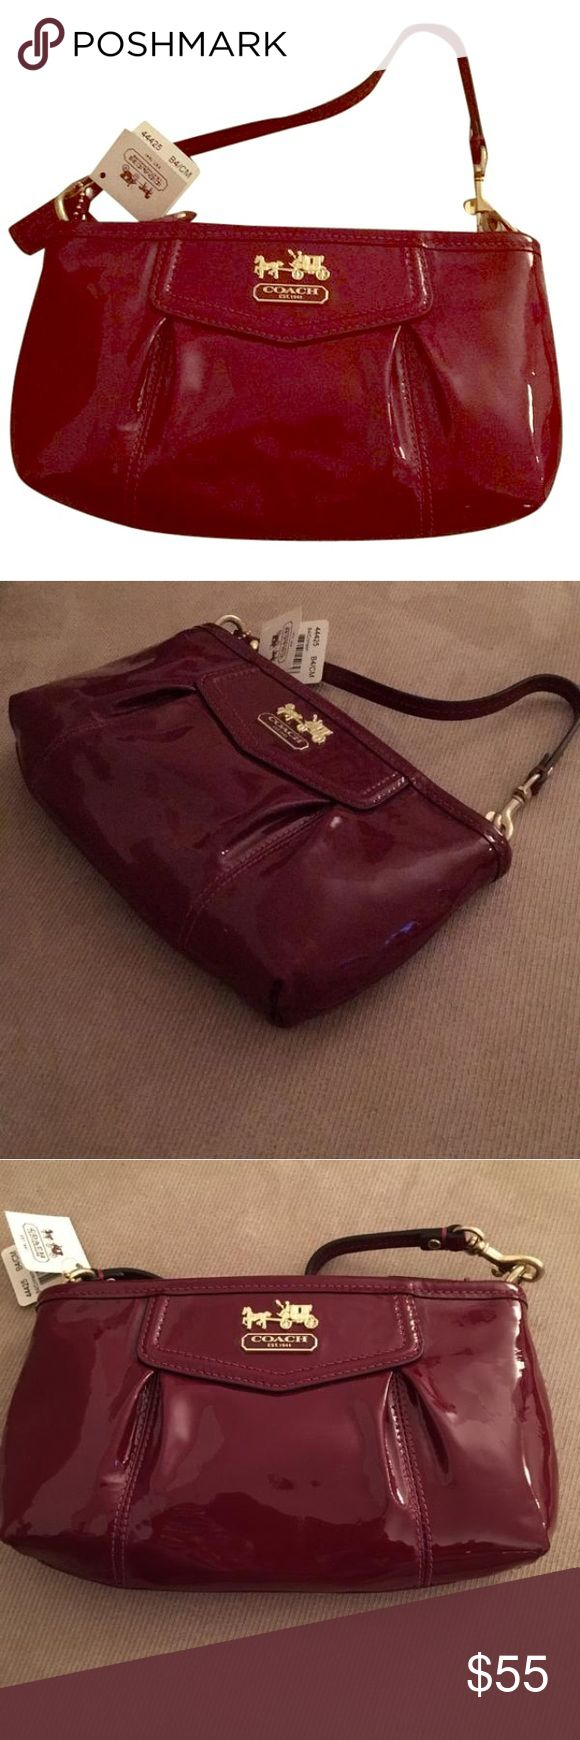 Coach clutch New! Red patent leather evening bag or clutch Coach Bags Clutches & Wristlets